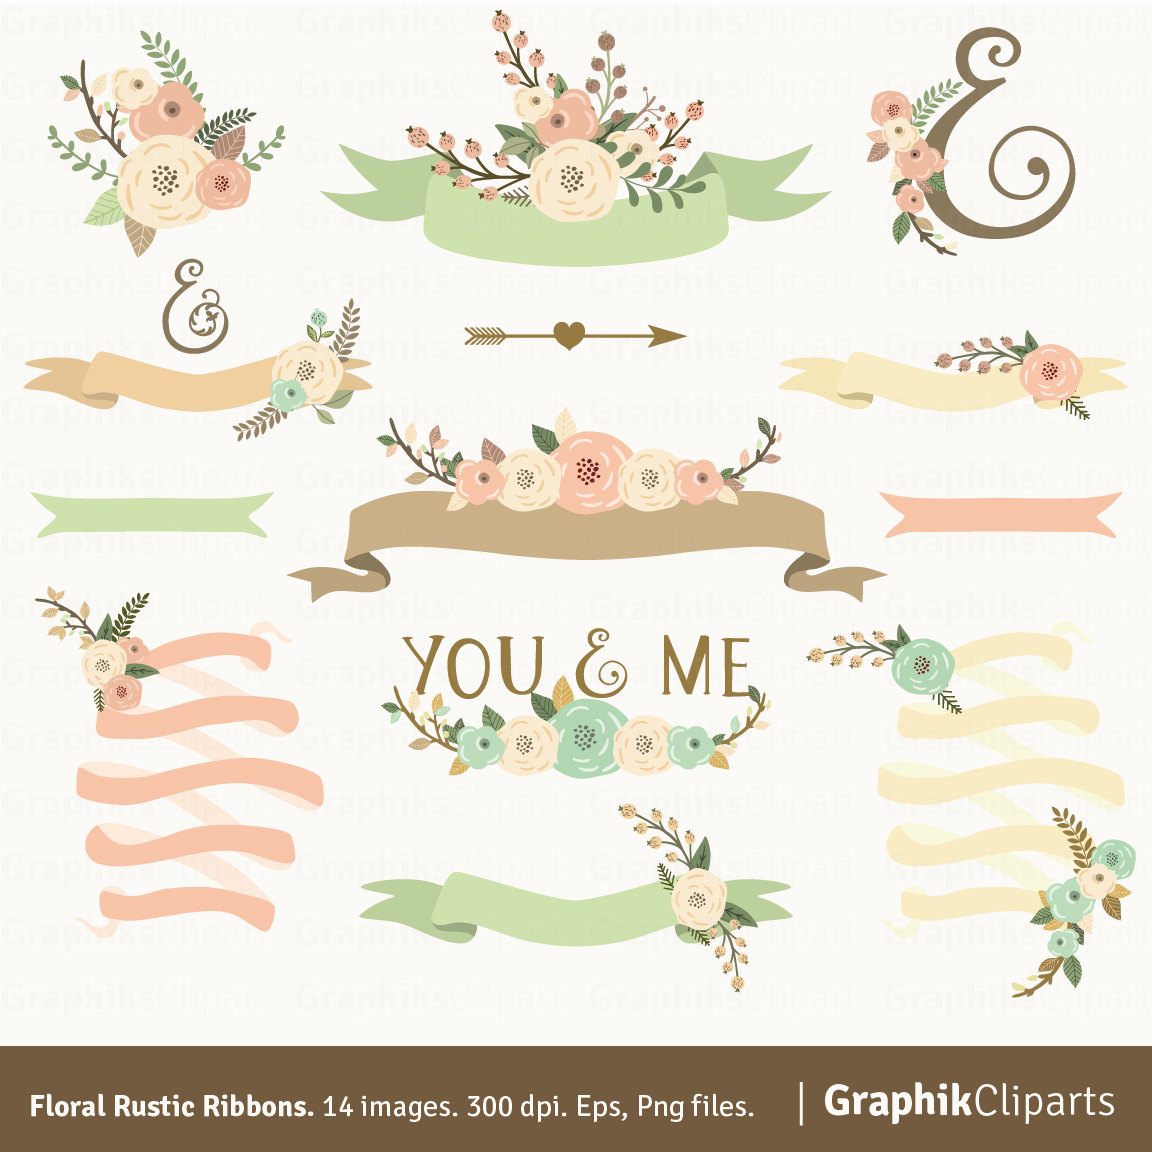 Floral Rustic Ribbons. Rustic Flowers. Ribbons Flowers.